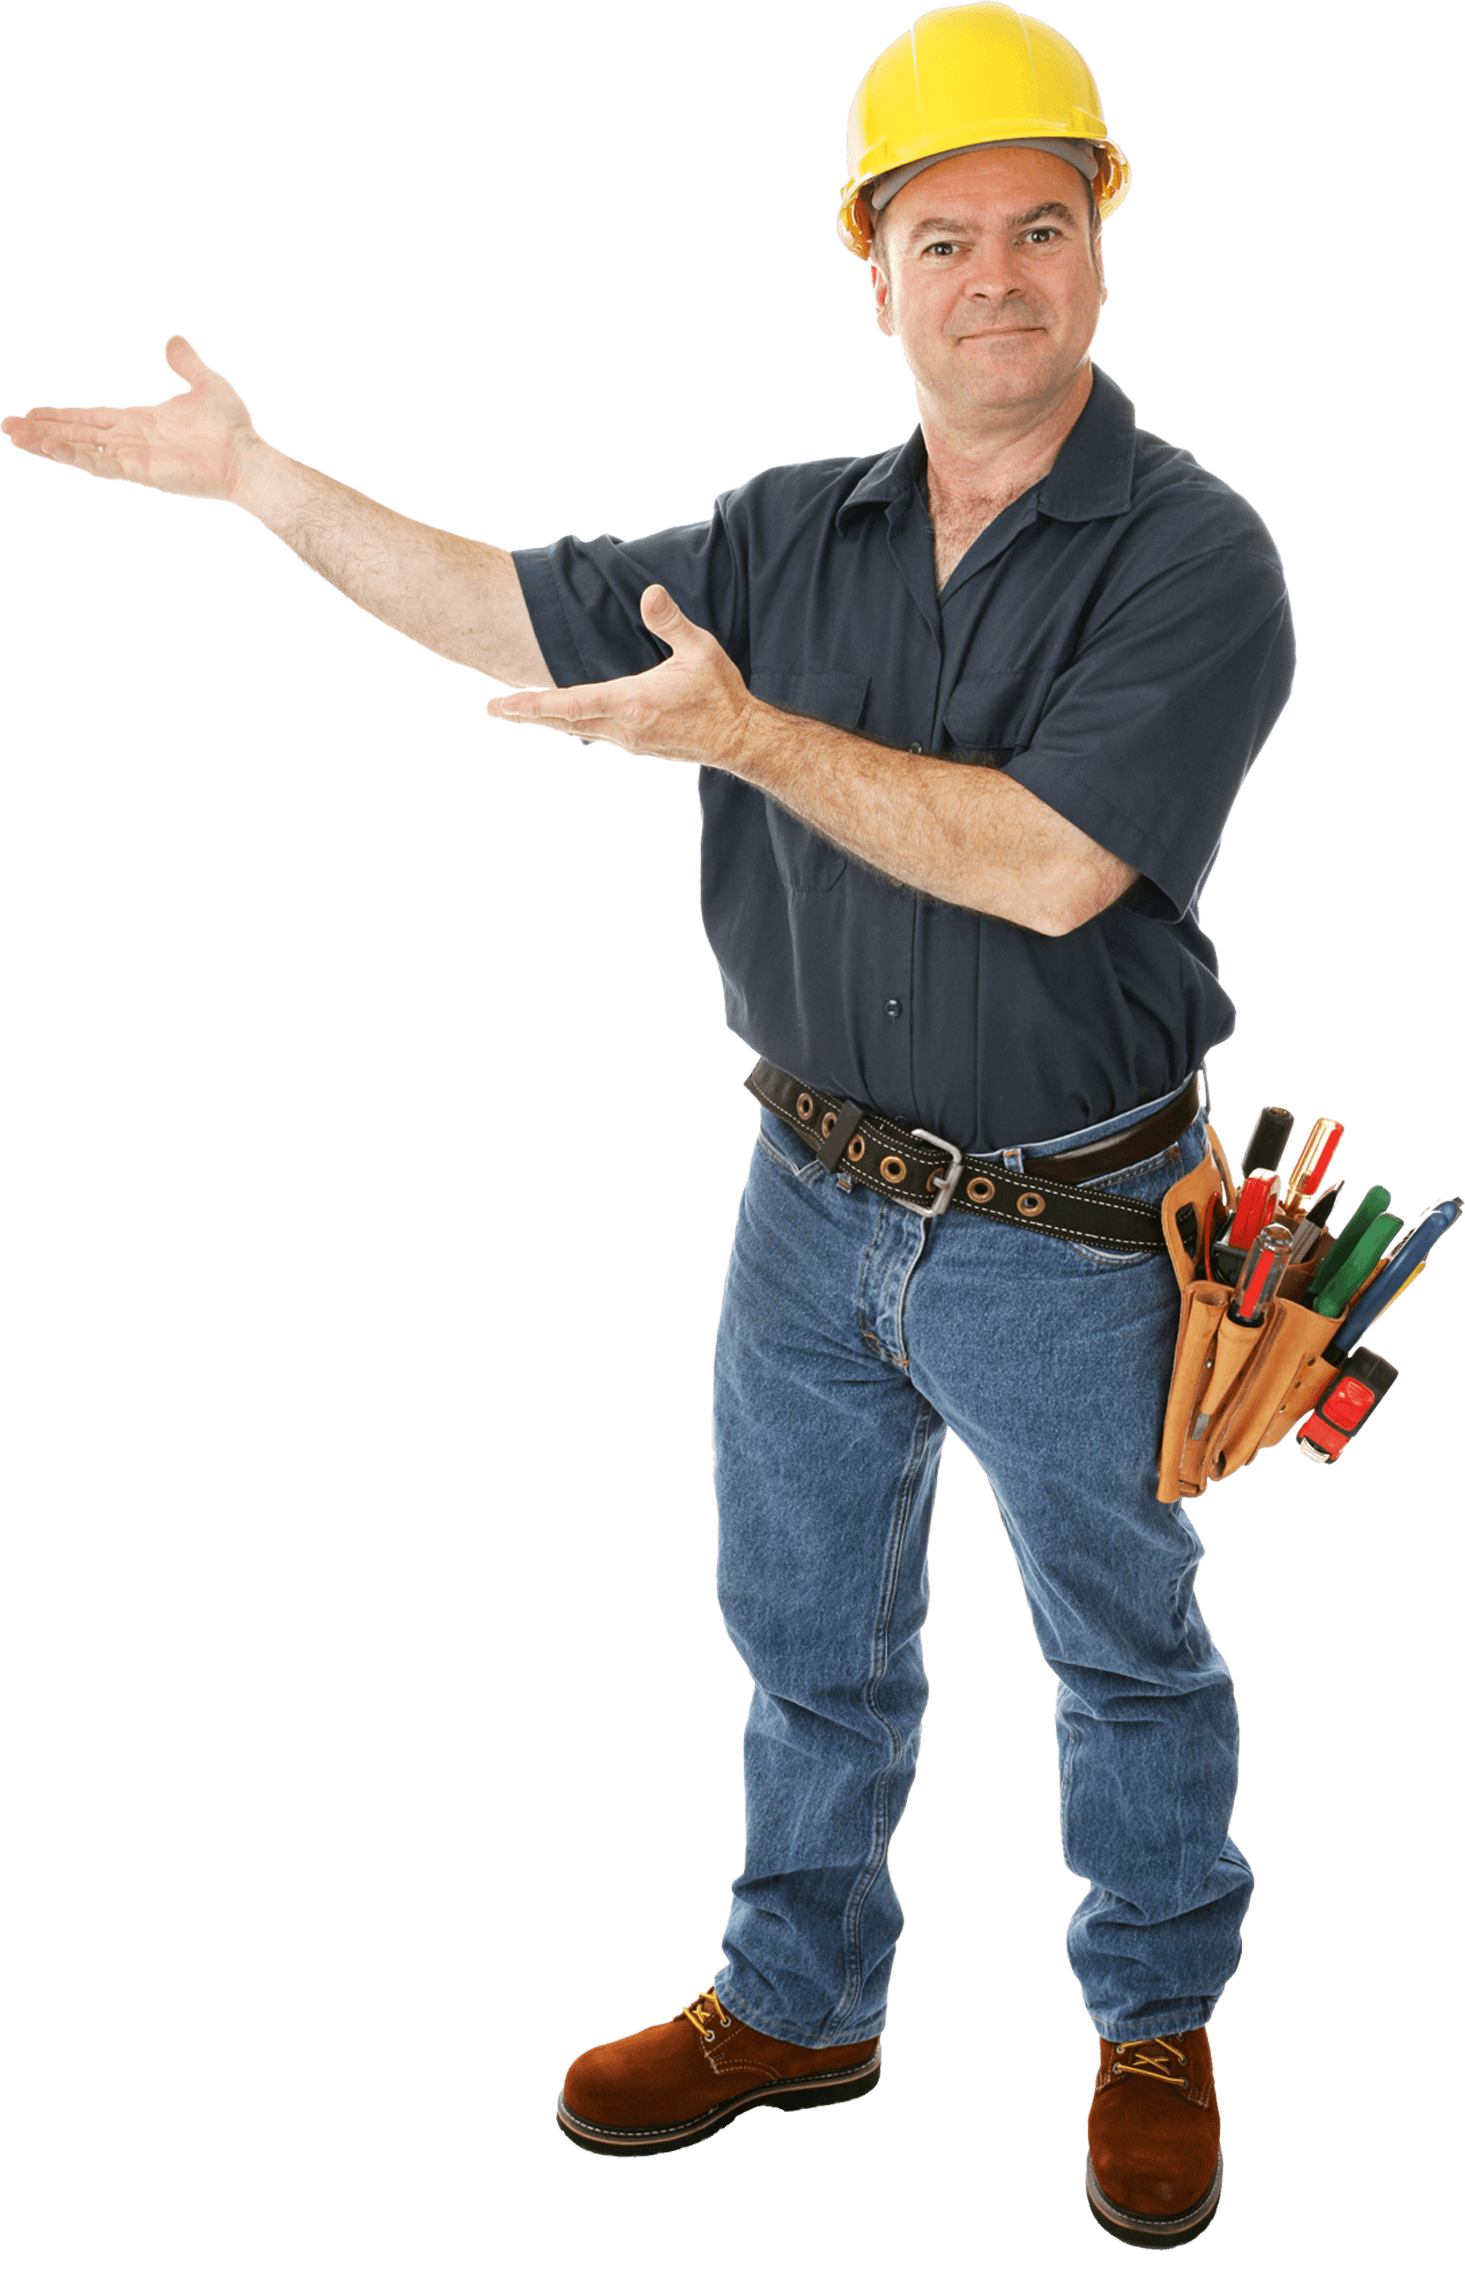 Download PNG image - Man Technic Png Image